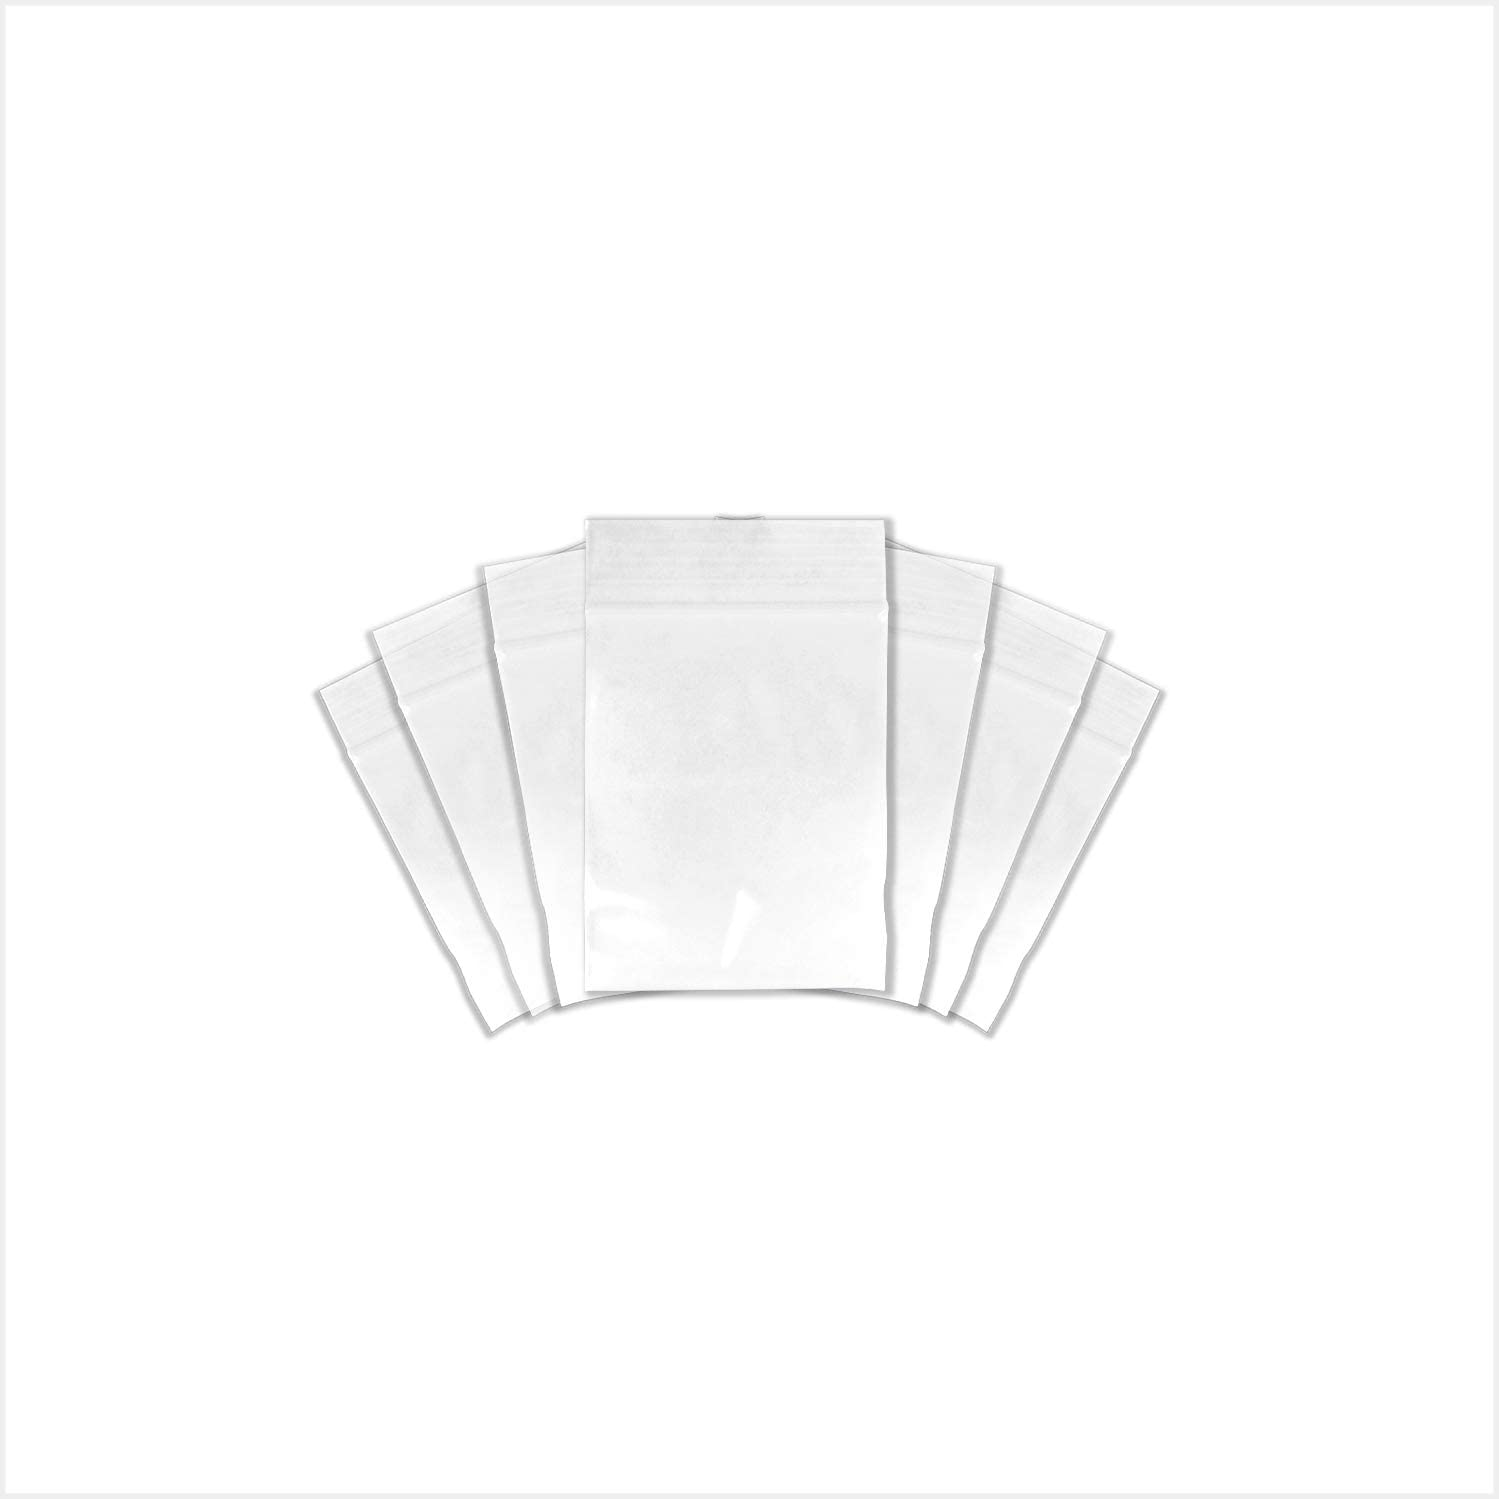 "SNL Quality Zip Lock Reclosable Clear Disposable Plastic Bags, Heavy Duty | 2.5"" X 3"" - 4 MIL - 200 Bags"